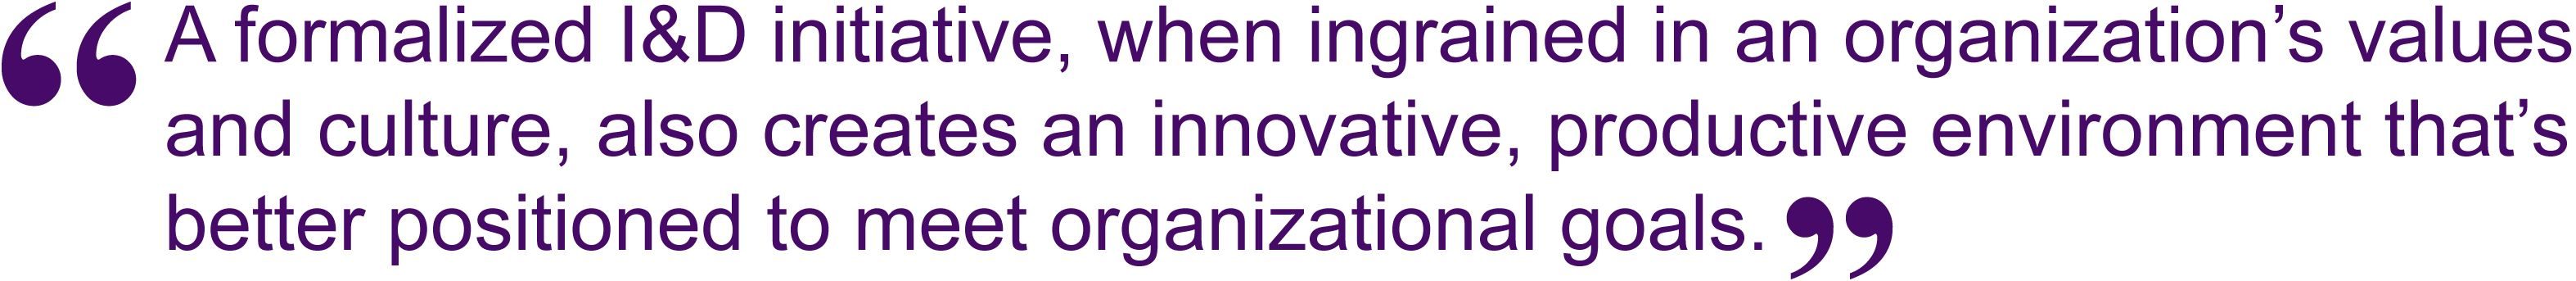 A formalized I&D initiative, when ingrained in an organization's values and culture, also creates an innovative, productive environment that's better positioned to meet organizational goals.